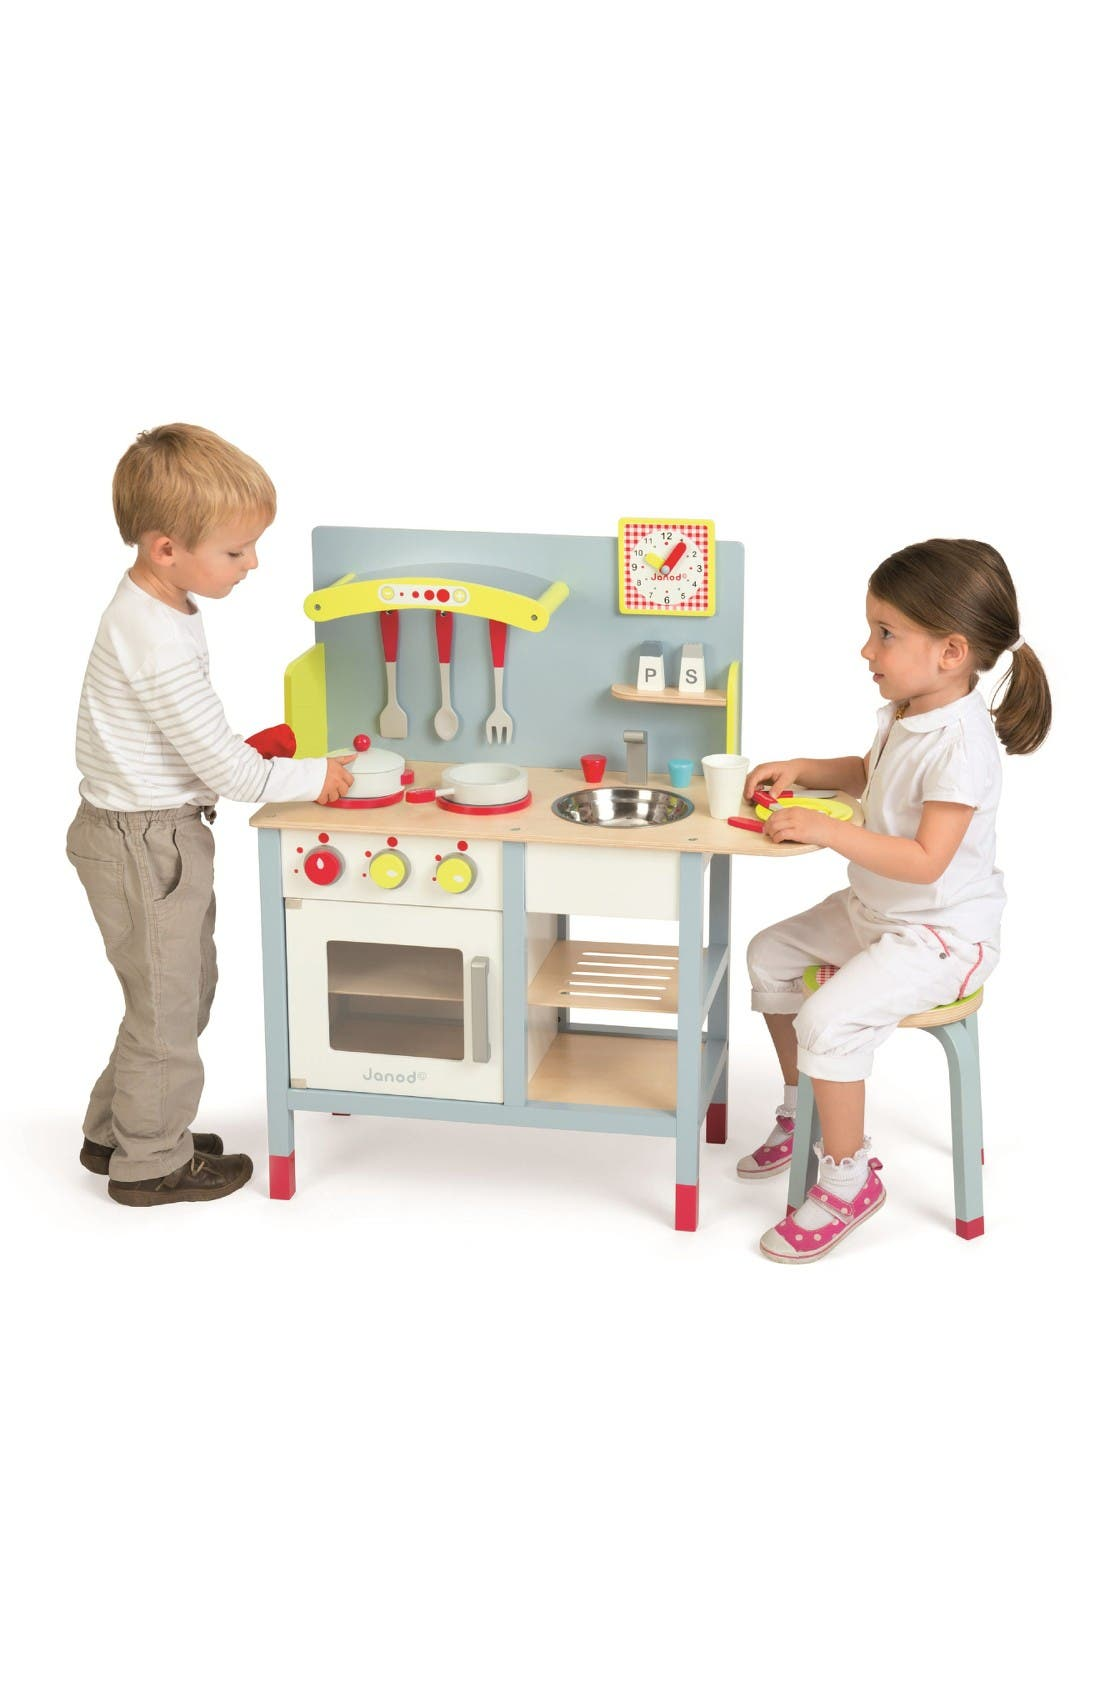 Janod Play Kitchen & Housekeeping Kids Toy Shop | Nordstrom